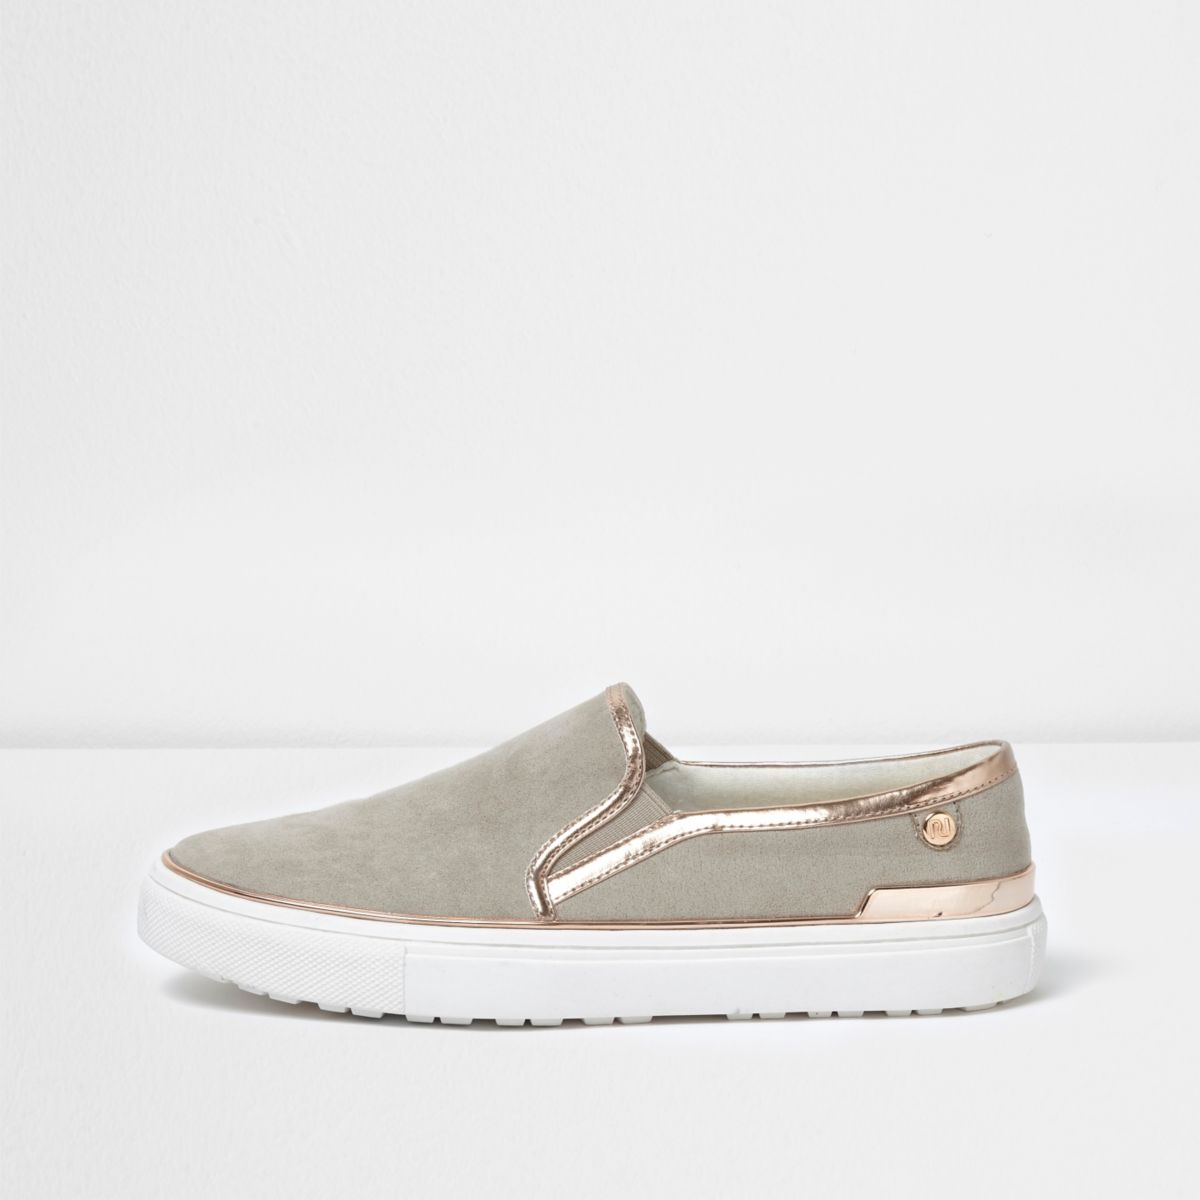 River Island Mens Slip On Shoes